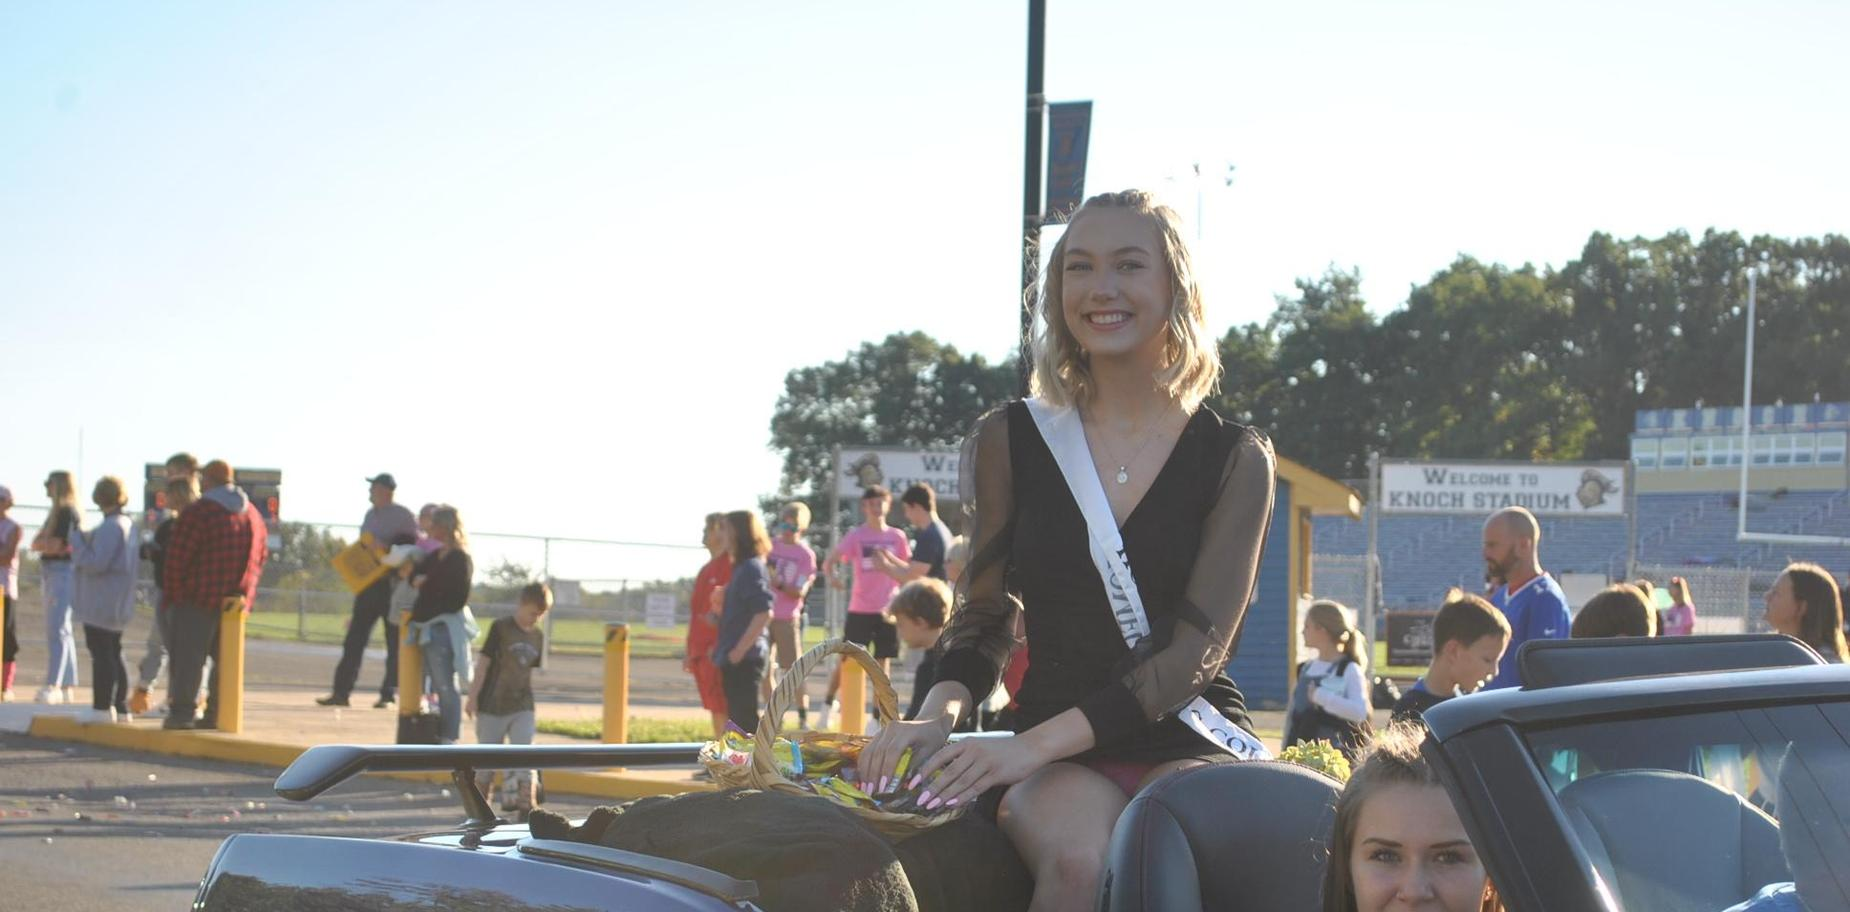 Homecoming Queen candidate in parade